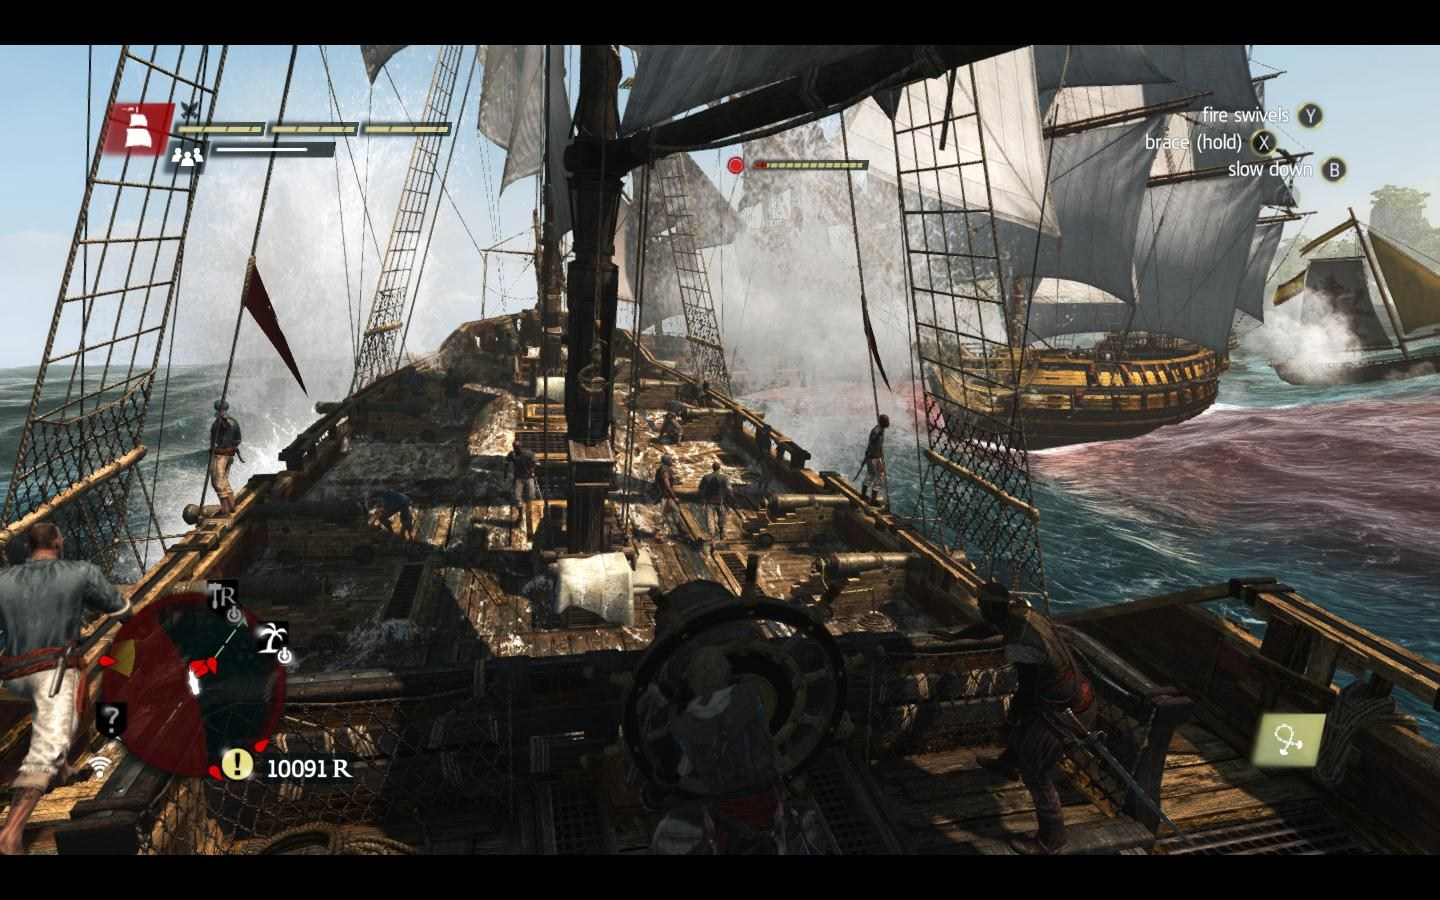 Thoughts assassins creed 4 black flag the scientific gamer ships voltagebd Gallery